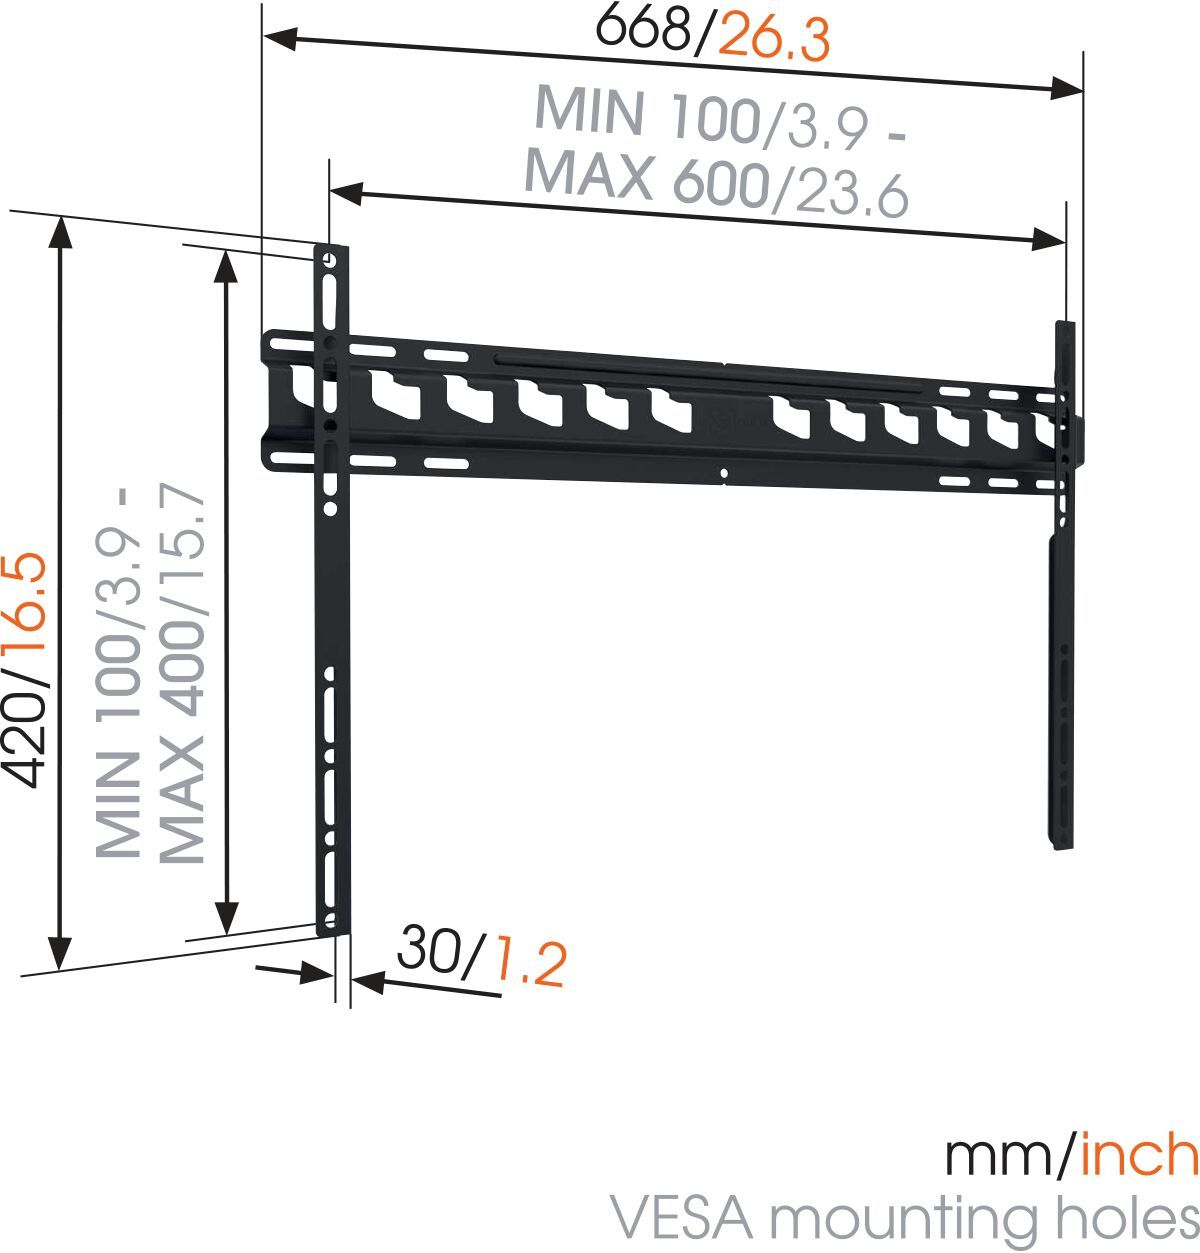 Vogel's MA 4000 (A1) Fixed TV Wall Mount - Suitable for 40 up to 80 inch TVs up to 80 kg - Dimensions